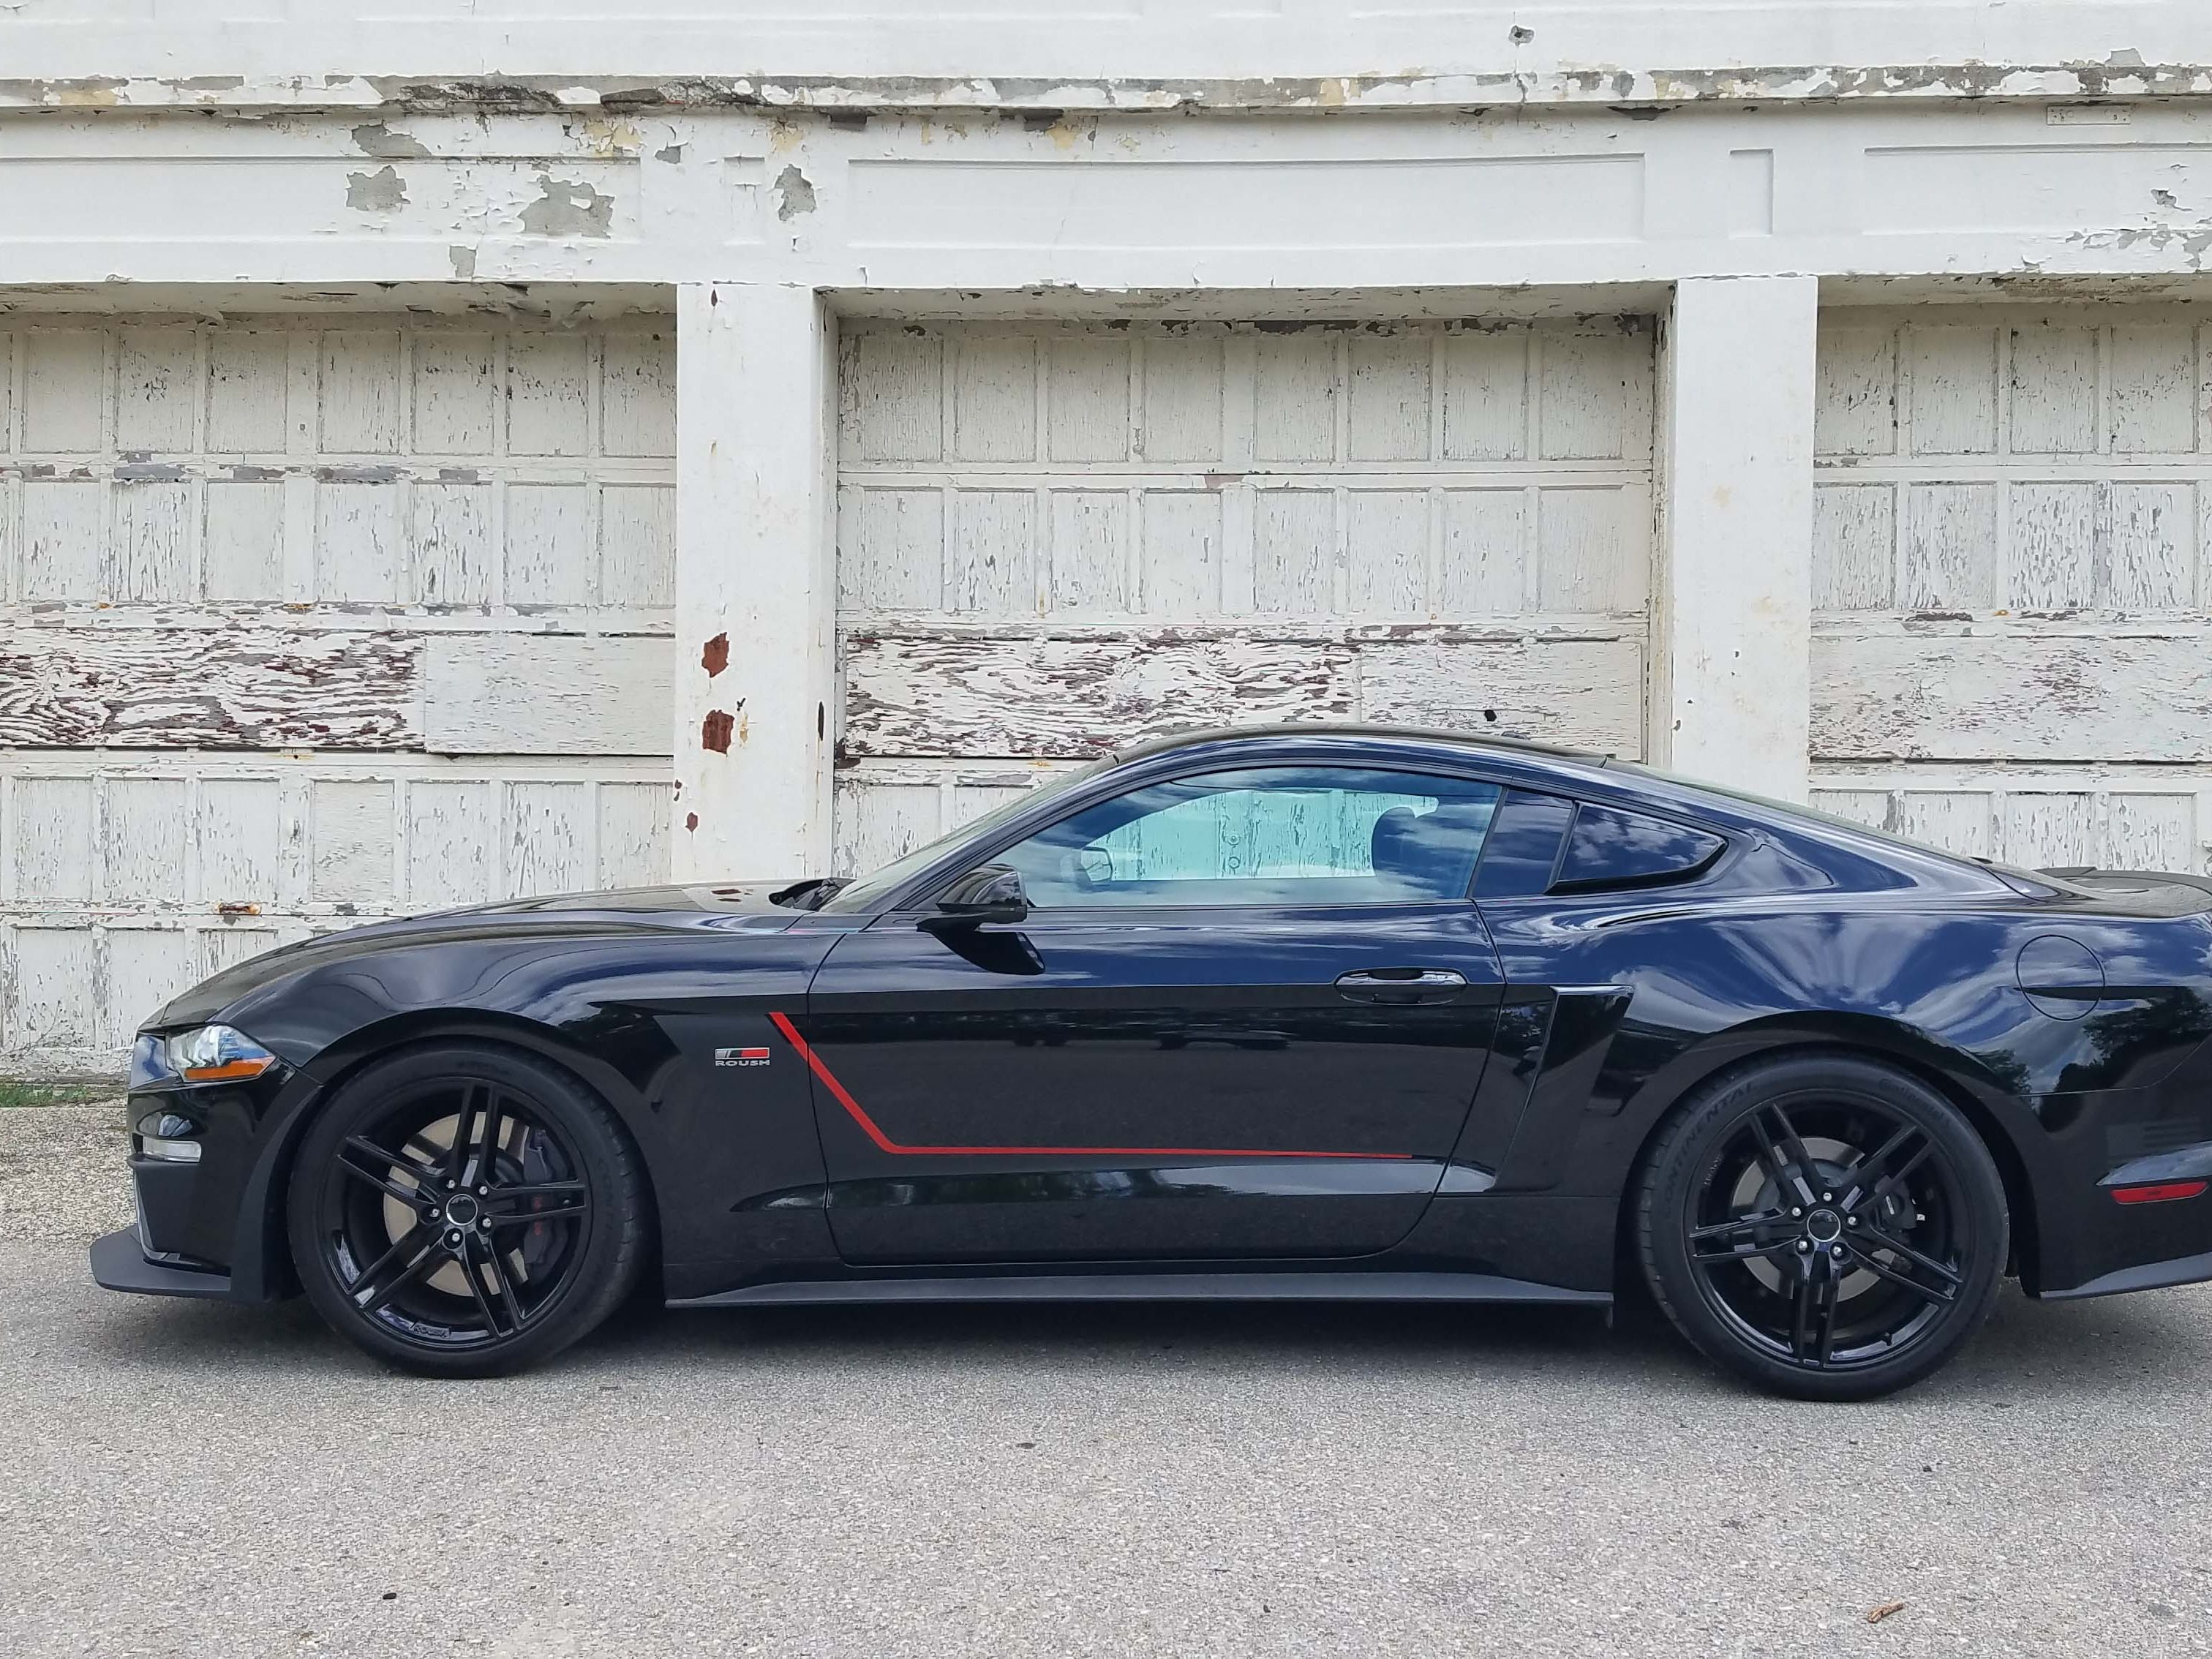 The sixth generation Ford Mustang has been a huge hit, out selling competitors since its introduction for the 2015 model year. The 2018 Roush Jackhammer Mustang takes the V-8 powered GT up a notch with performance mods.